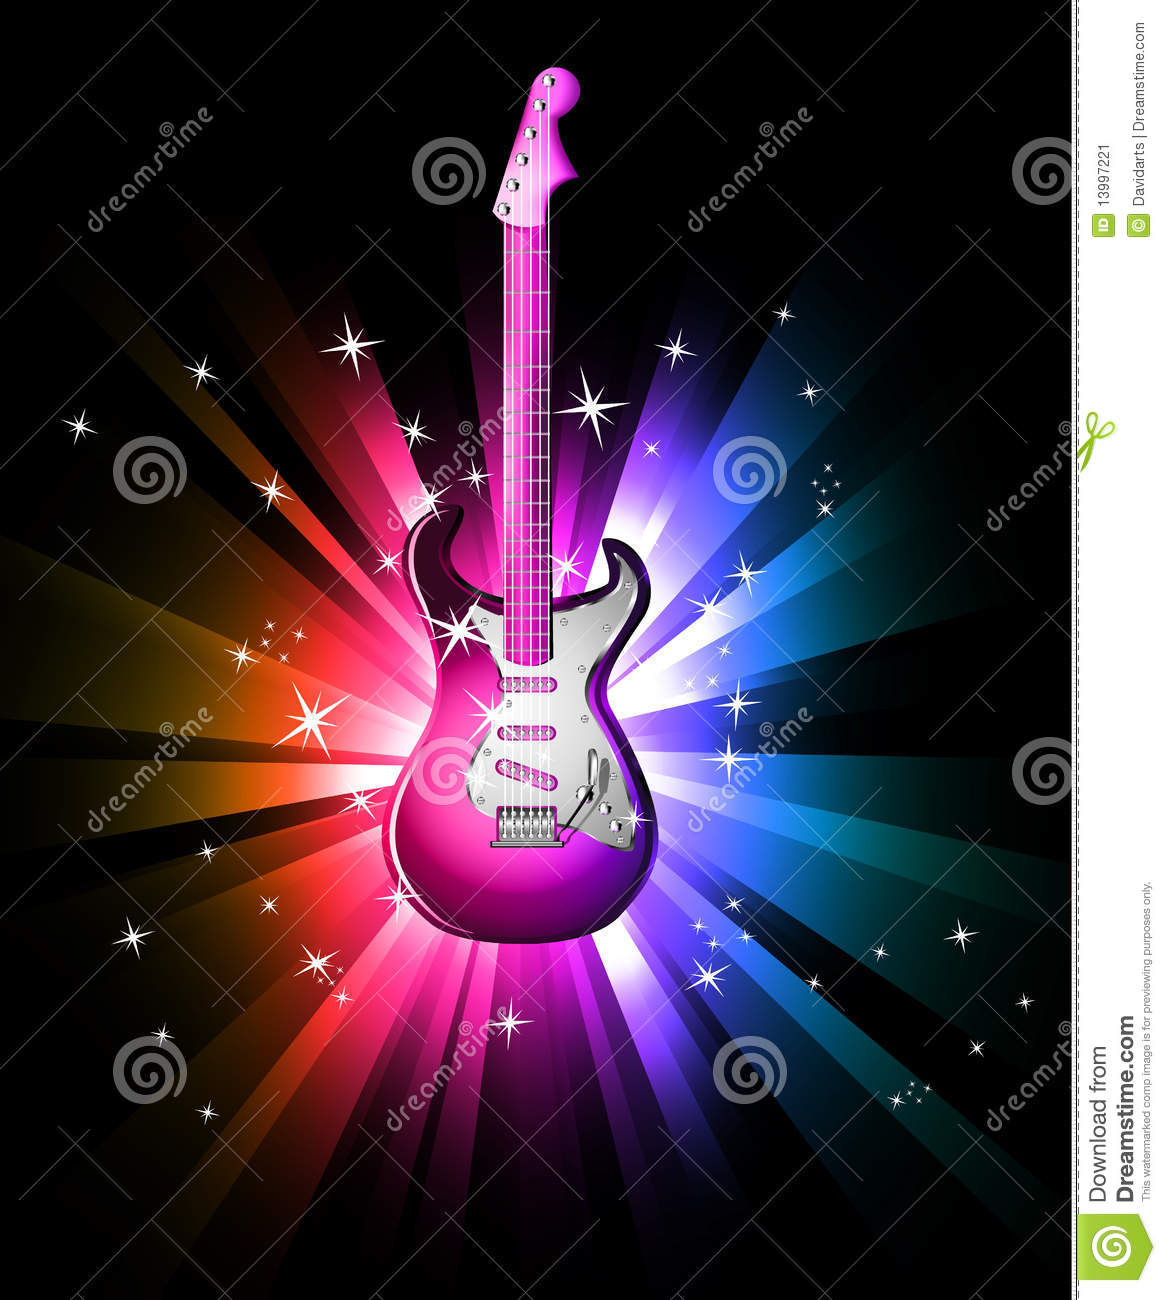 Mic Wallpaper Hd Disco Dance Background With Electric Guitar Stock Image